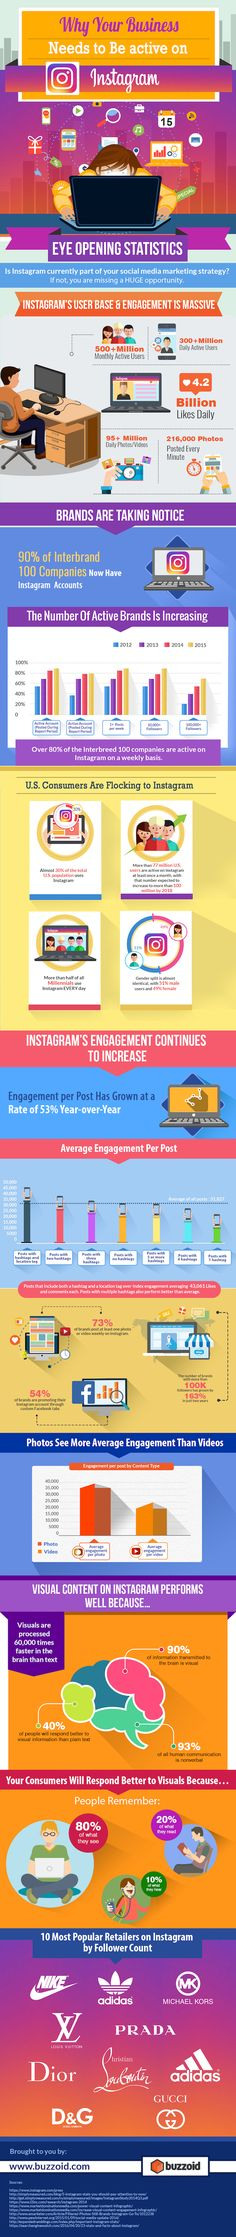 Why Instagram is a Potential Marketing Goldmine [Infographic]